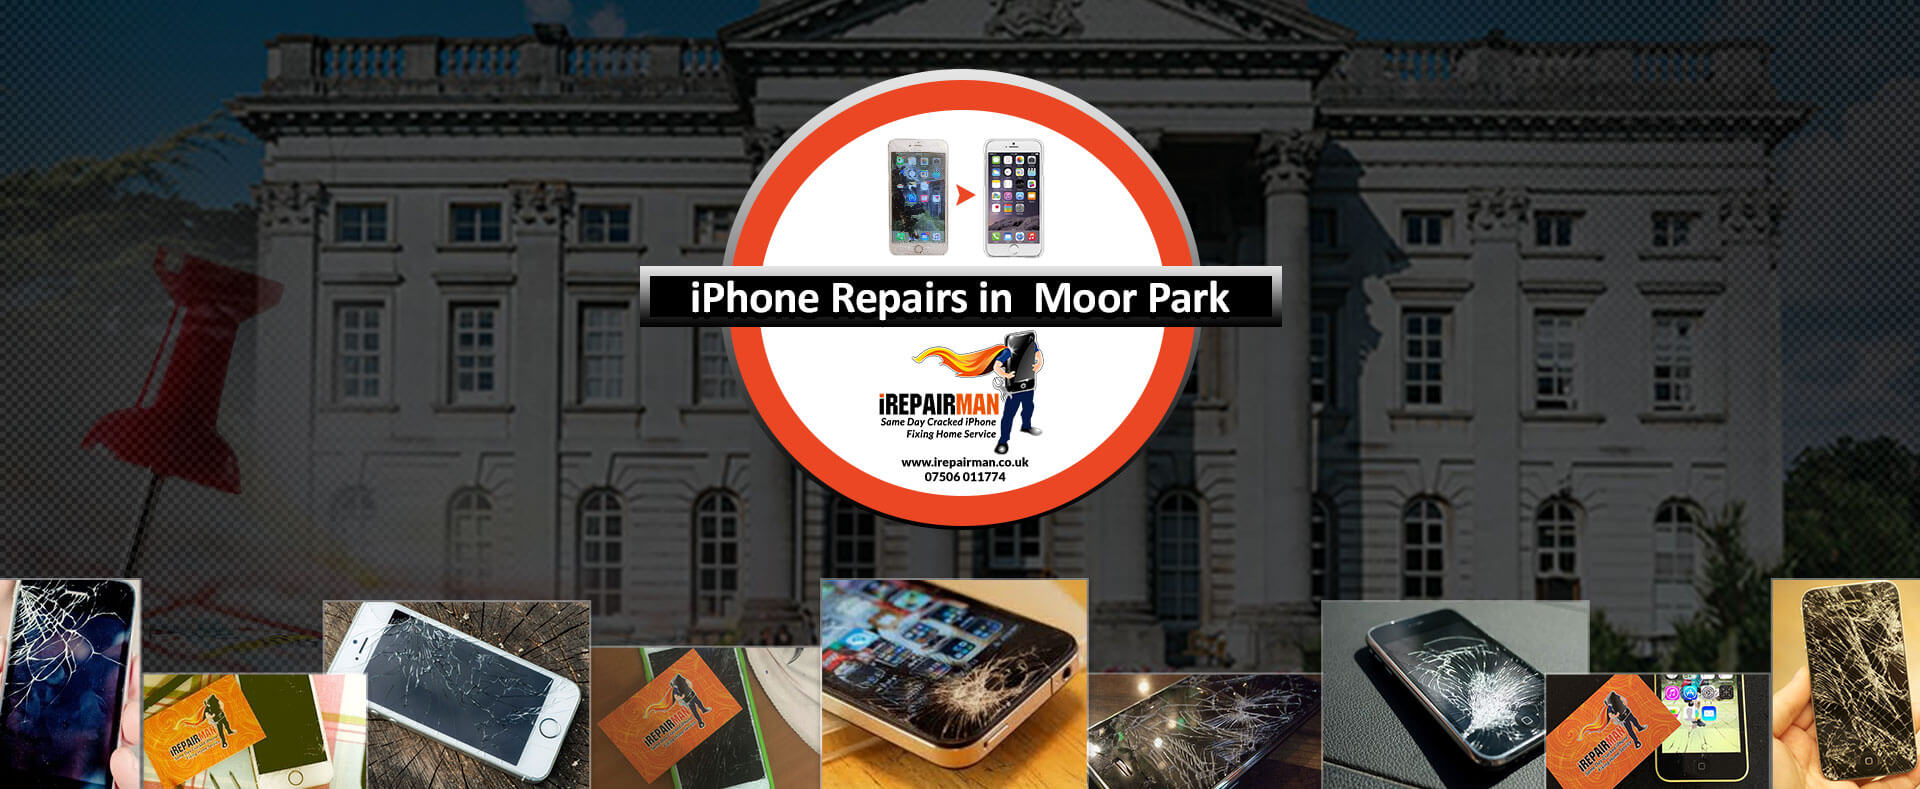 iPhone Repairs in Moor Park